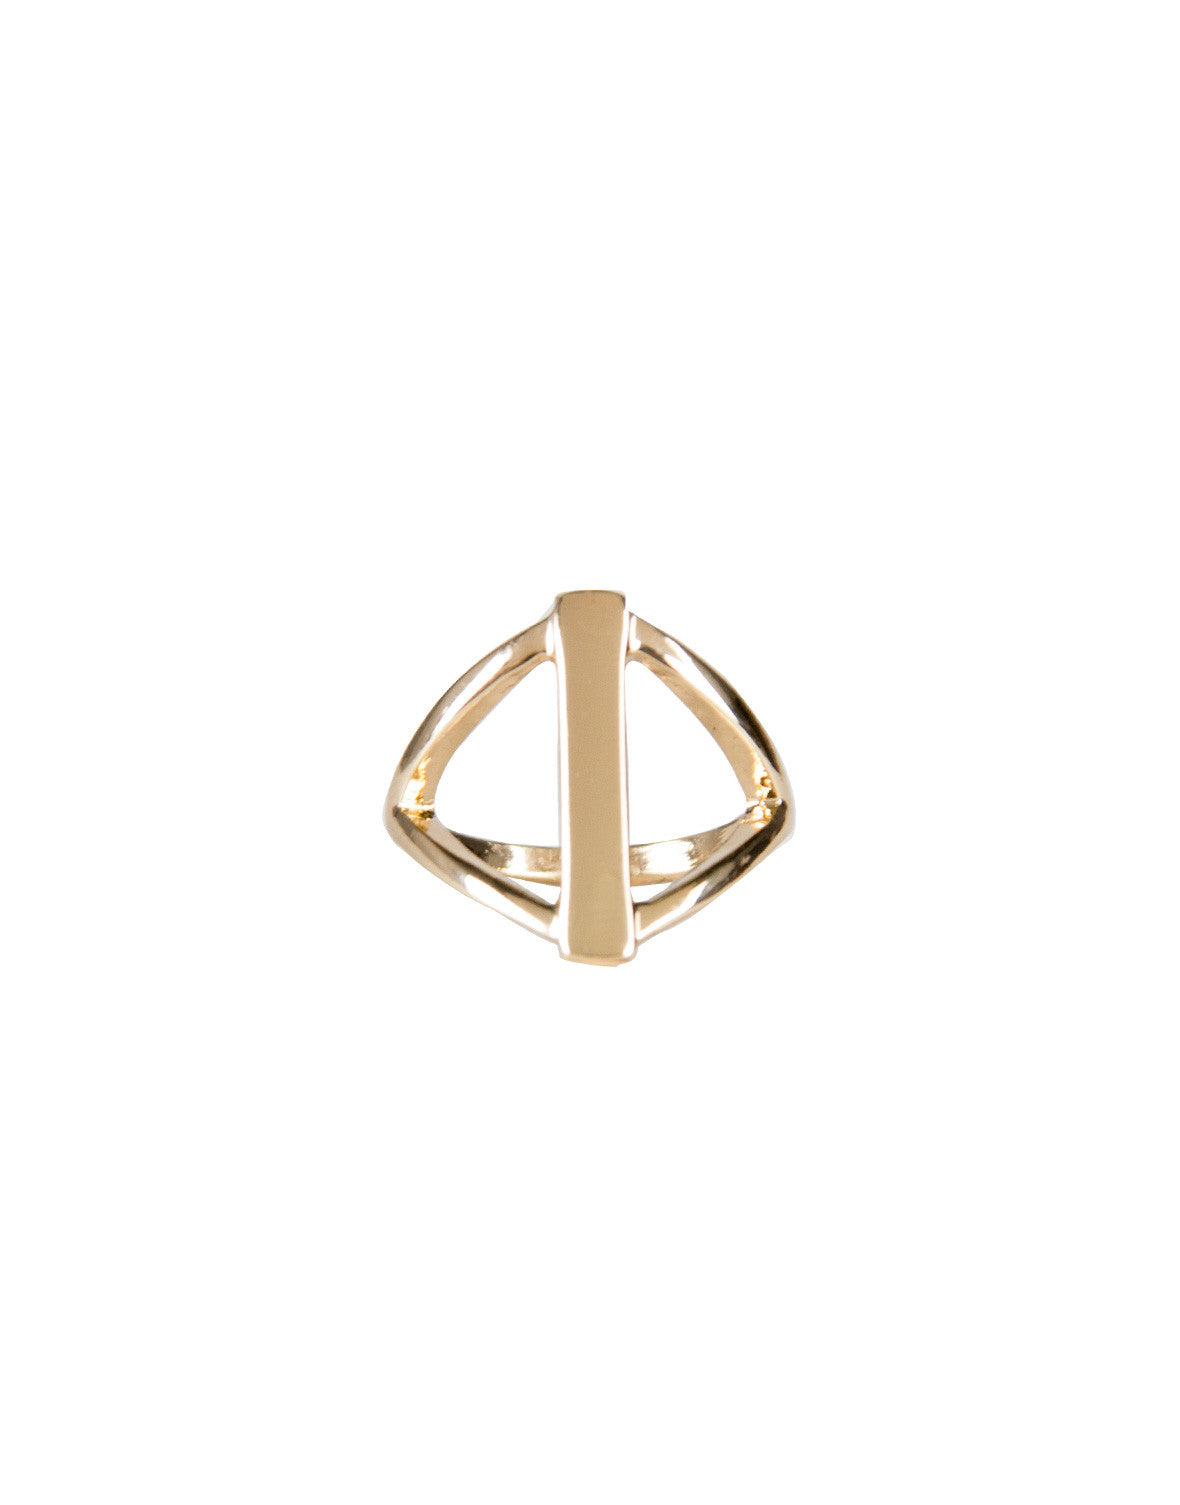 Diamond Bar Knuckle Ring - Ana R10439-Gold